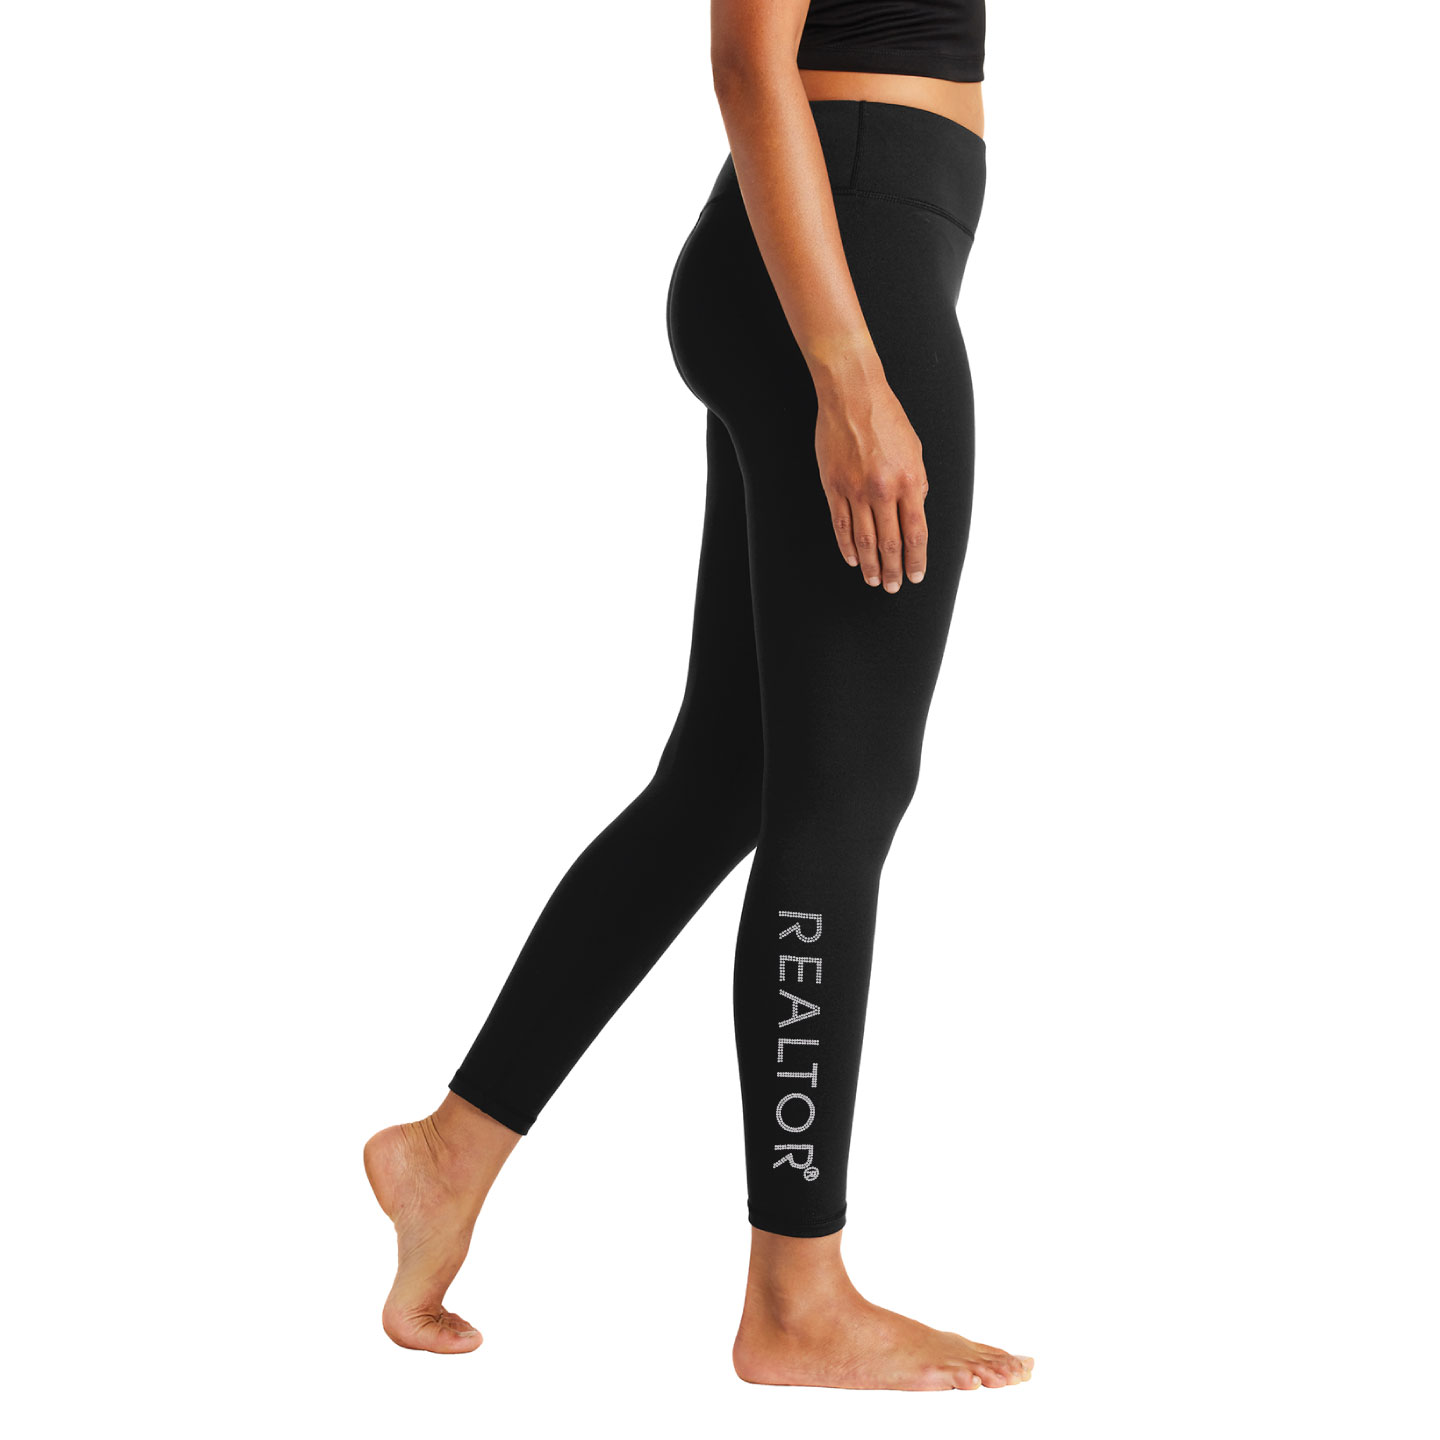 Ladies Thick Sport Leggings Bling, Leggings, Sport, Yoga, Trendy, Slimming